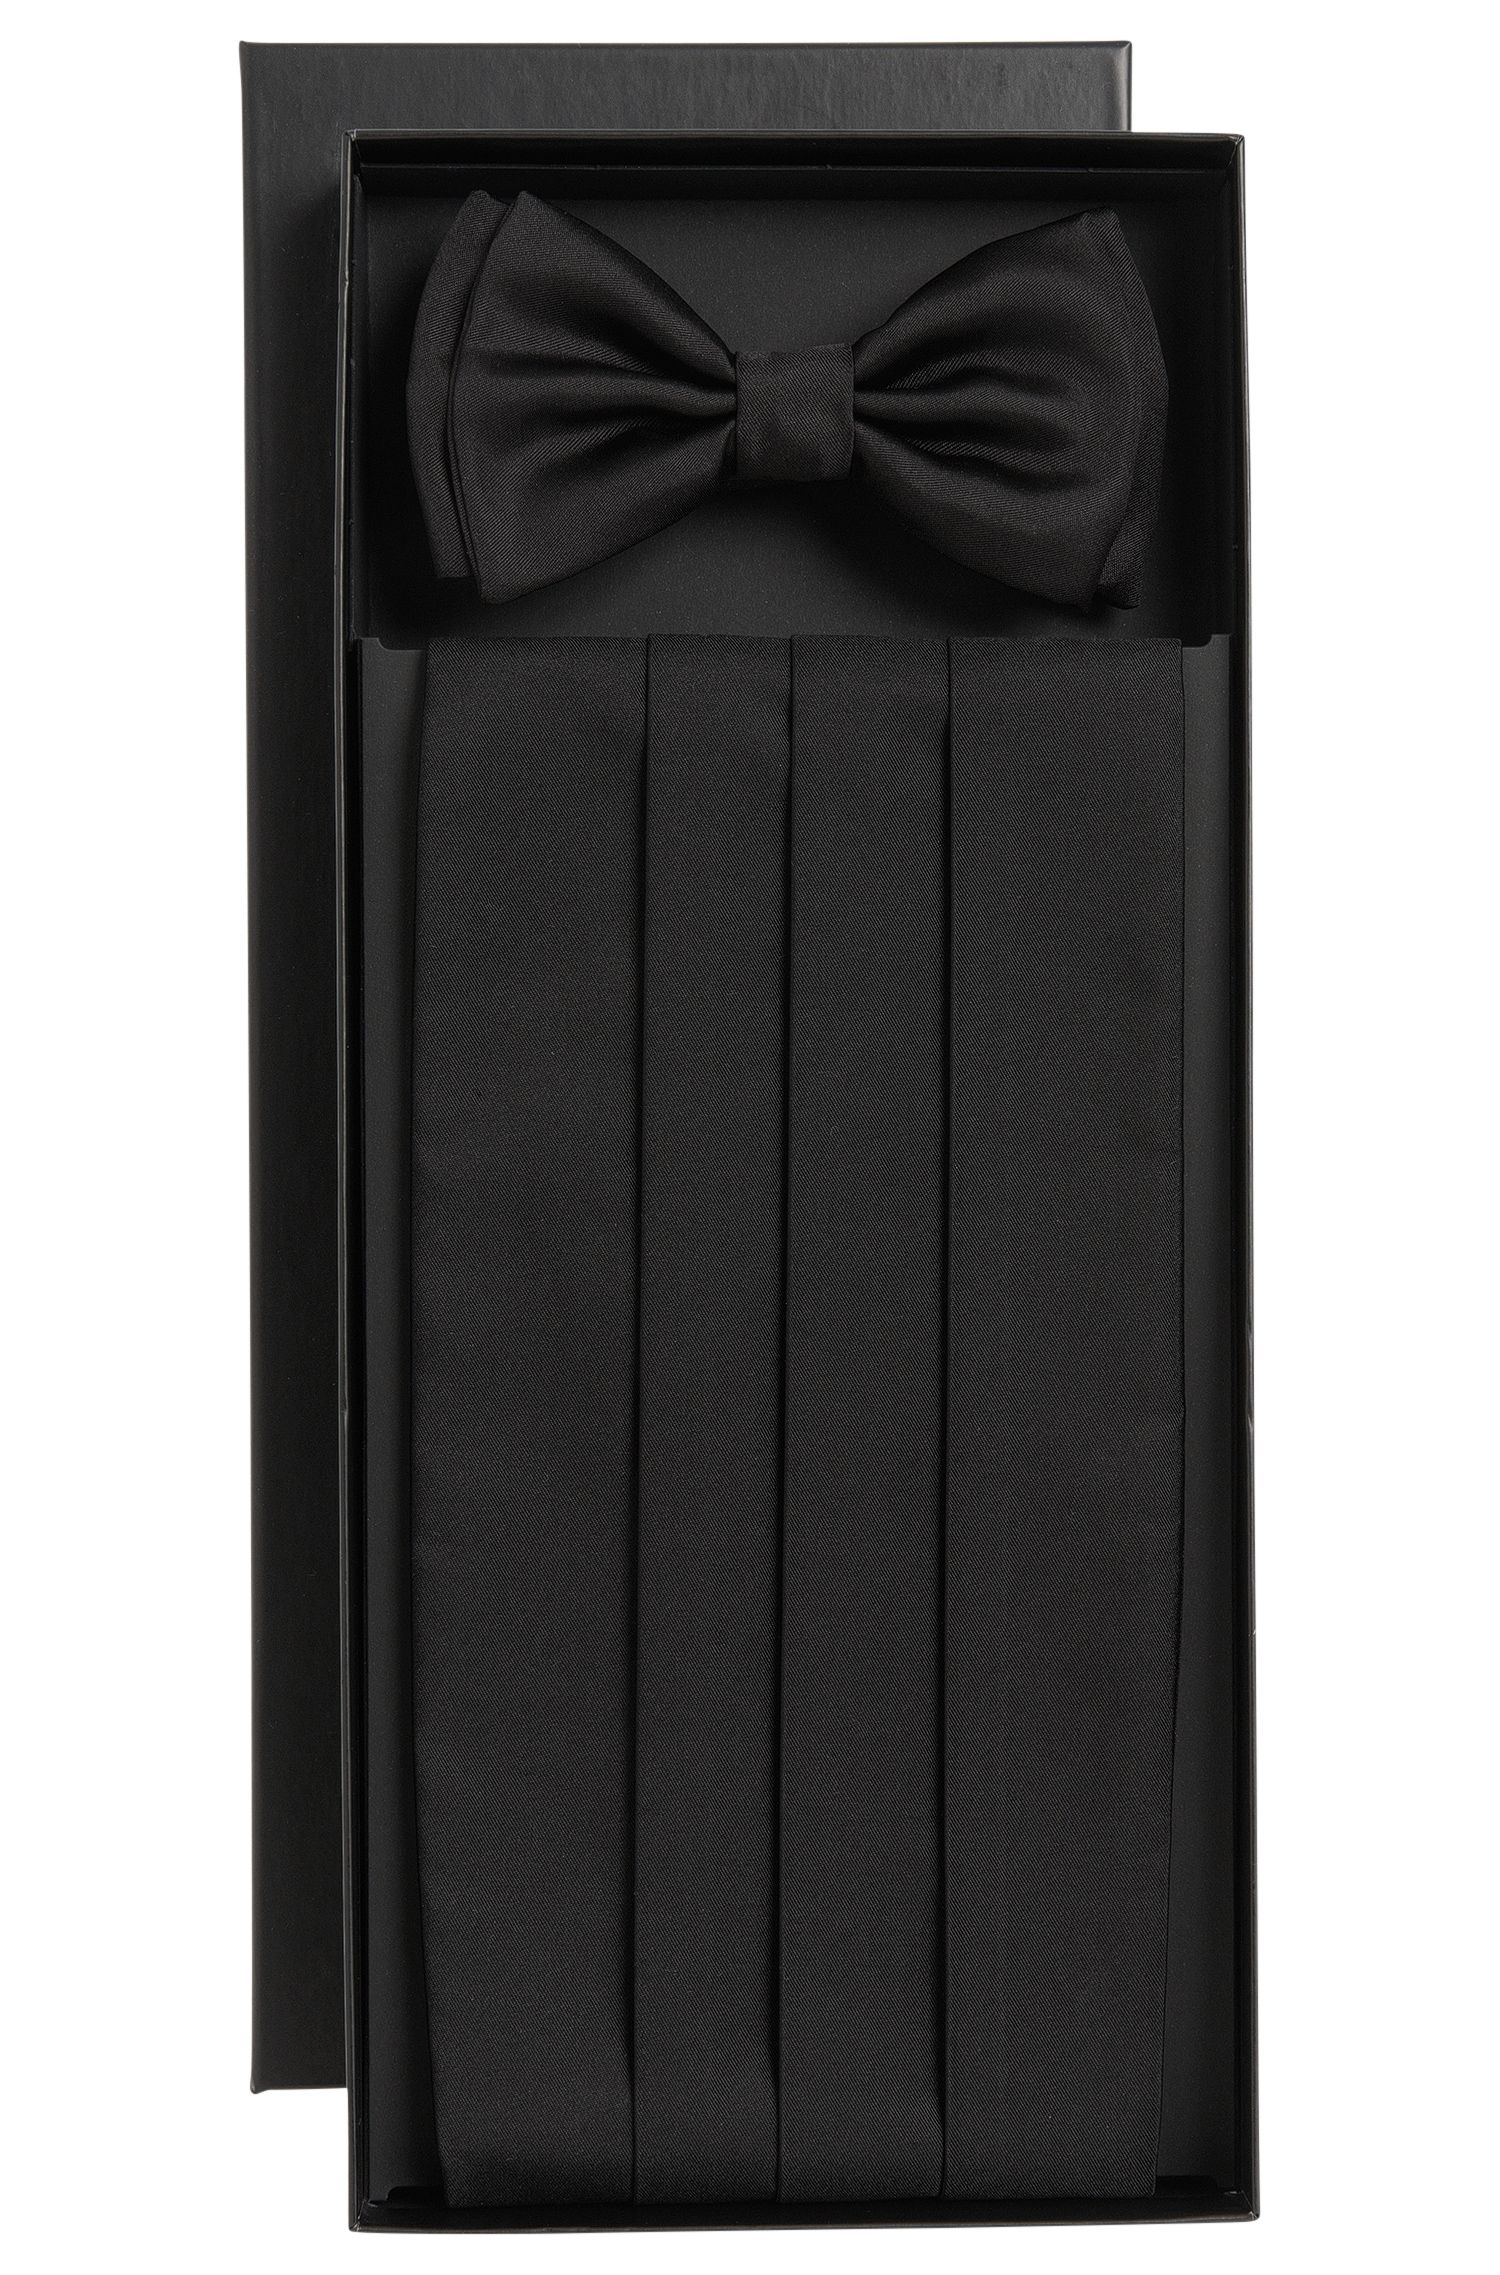 Silk bow tie and cummerbund set